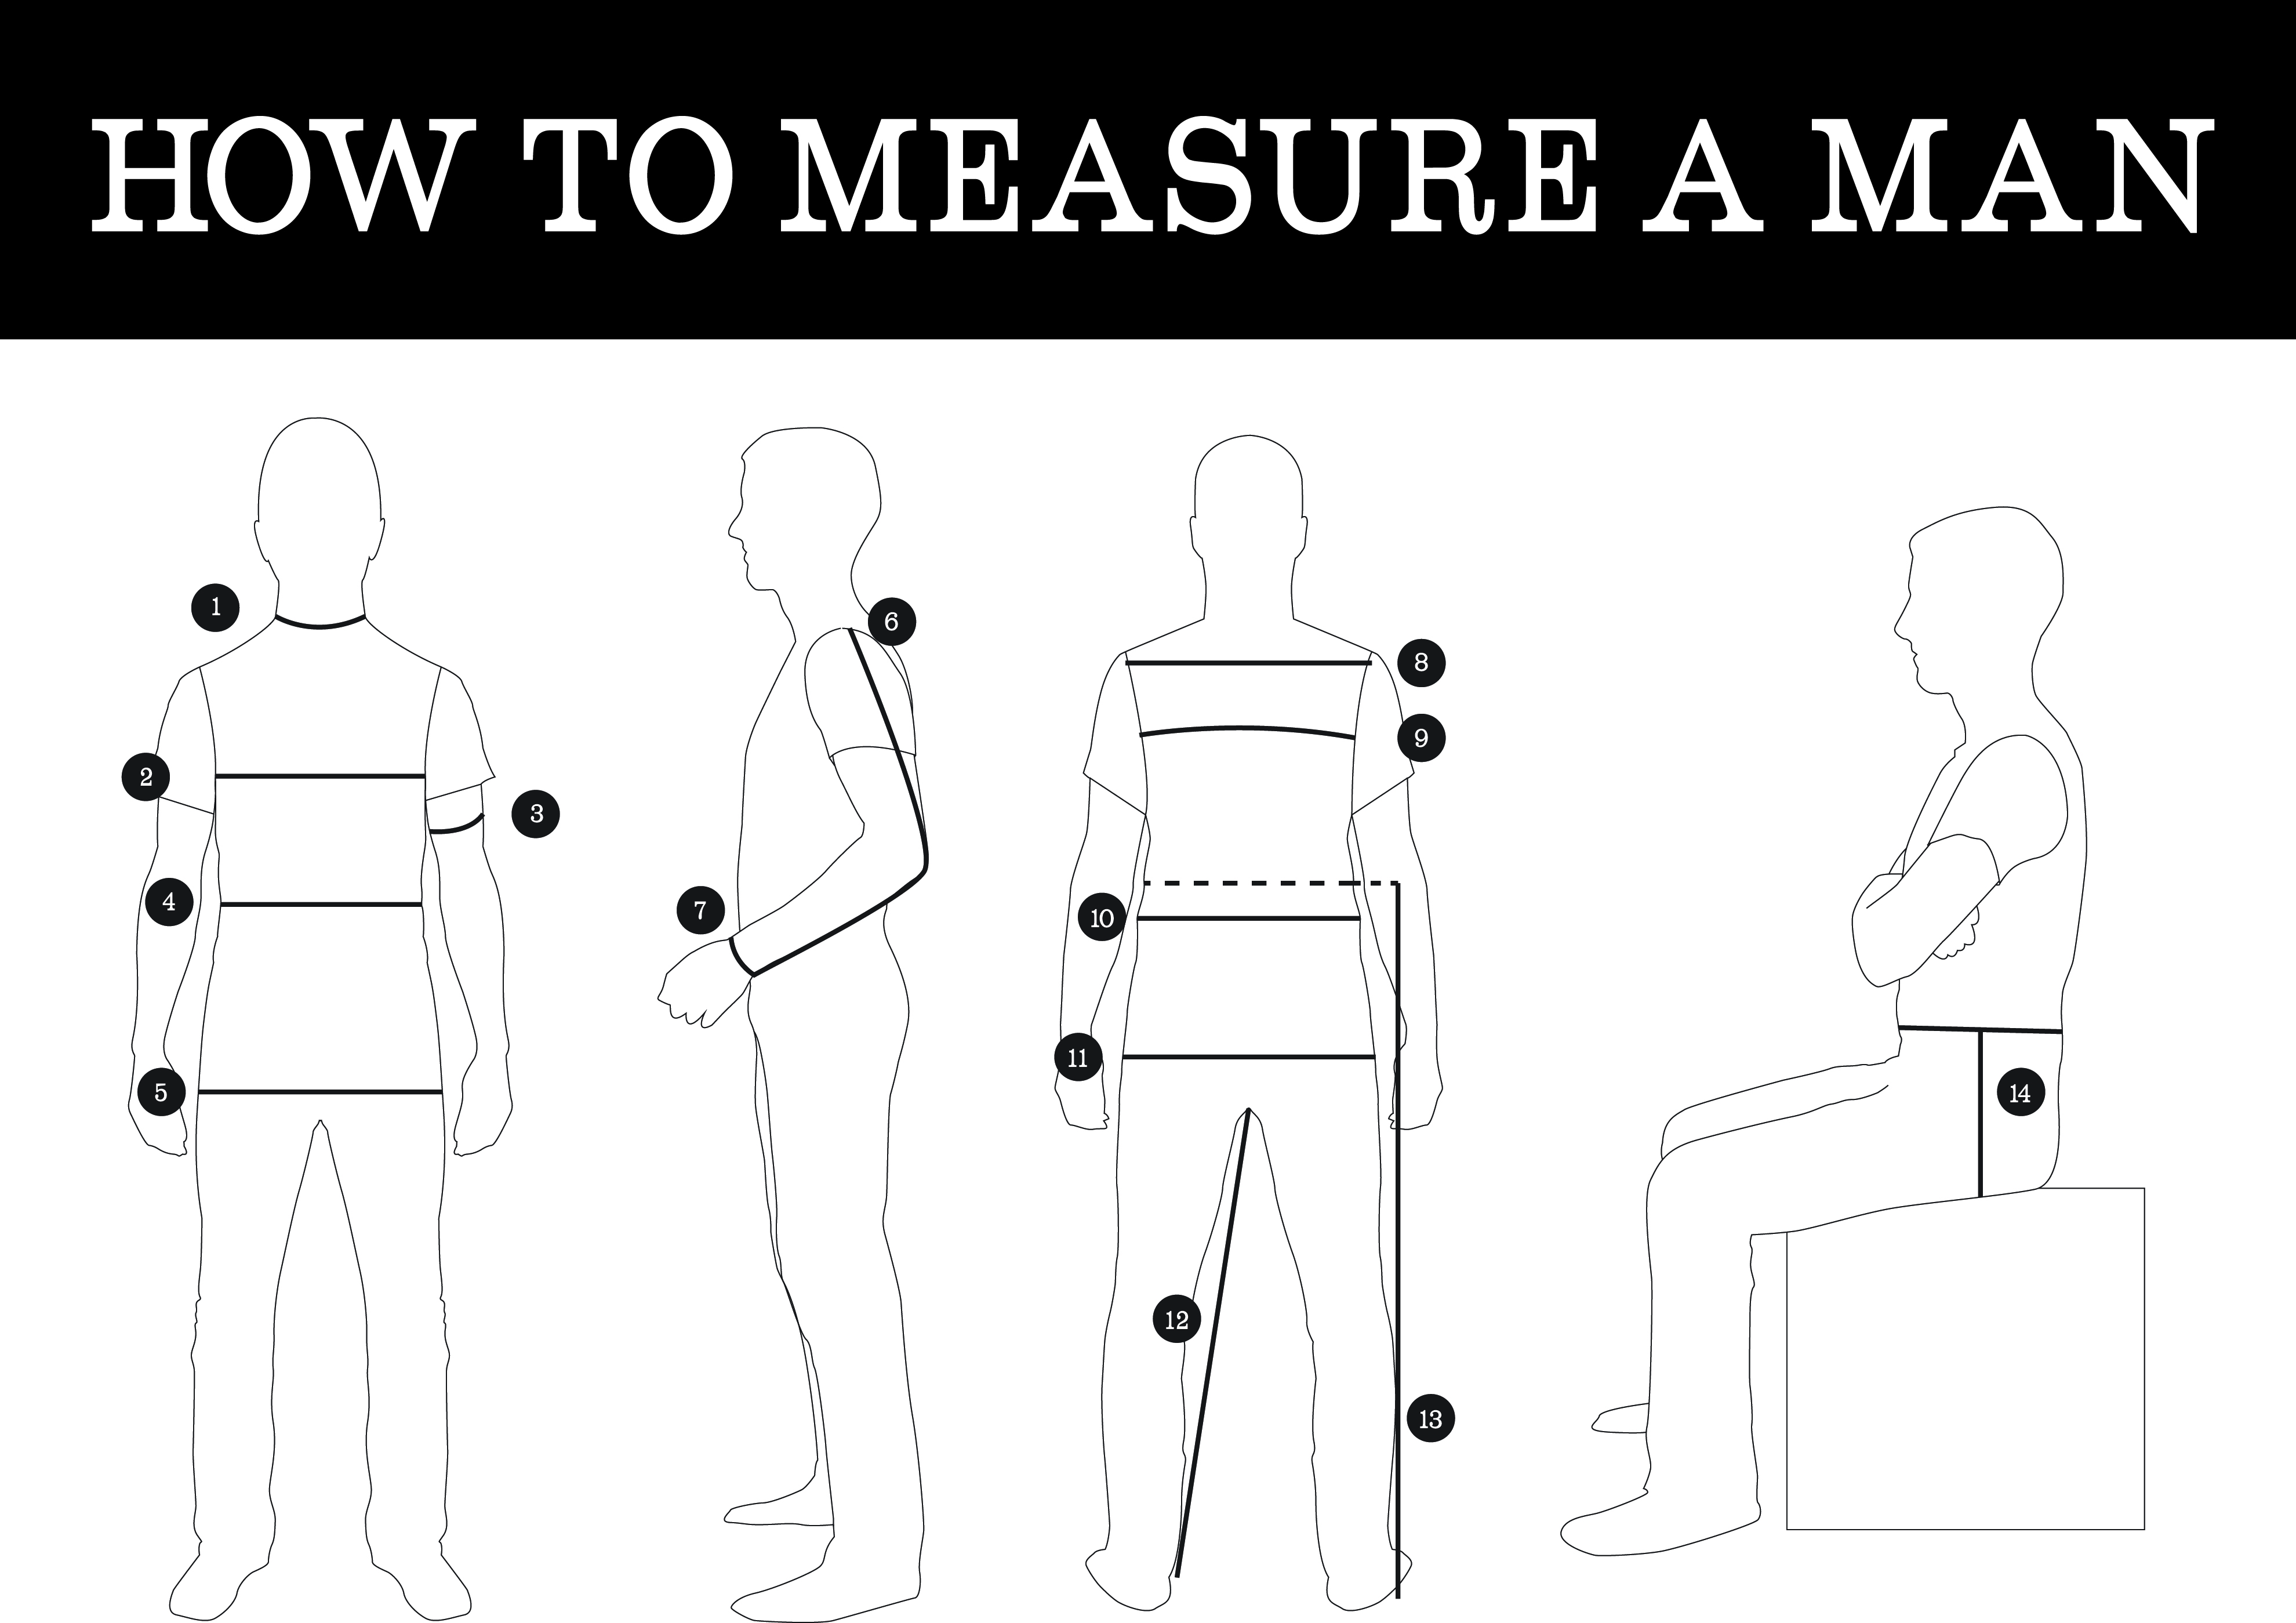 How to Measure a Man